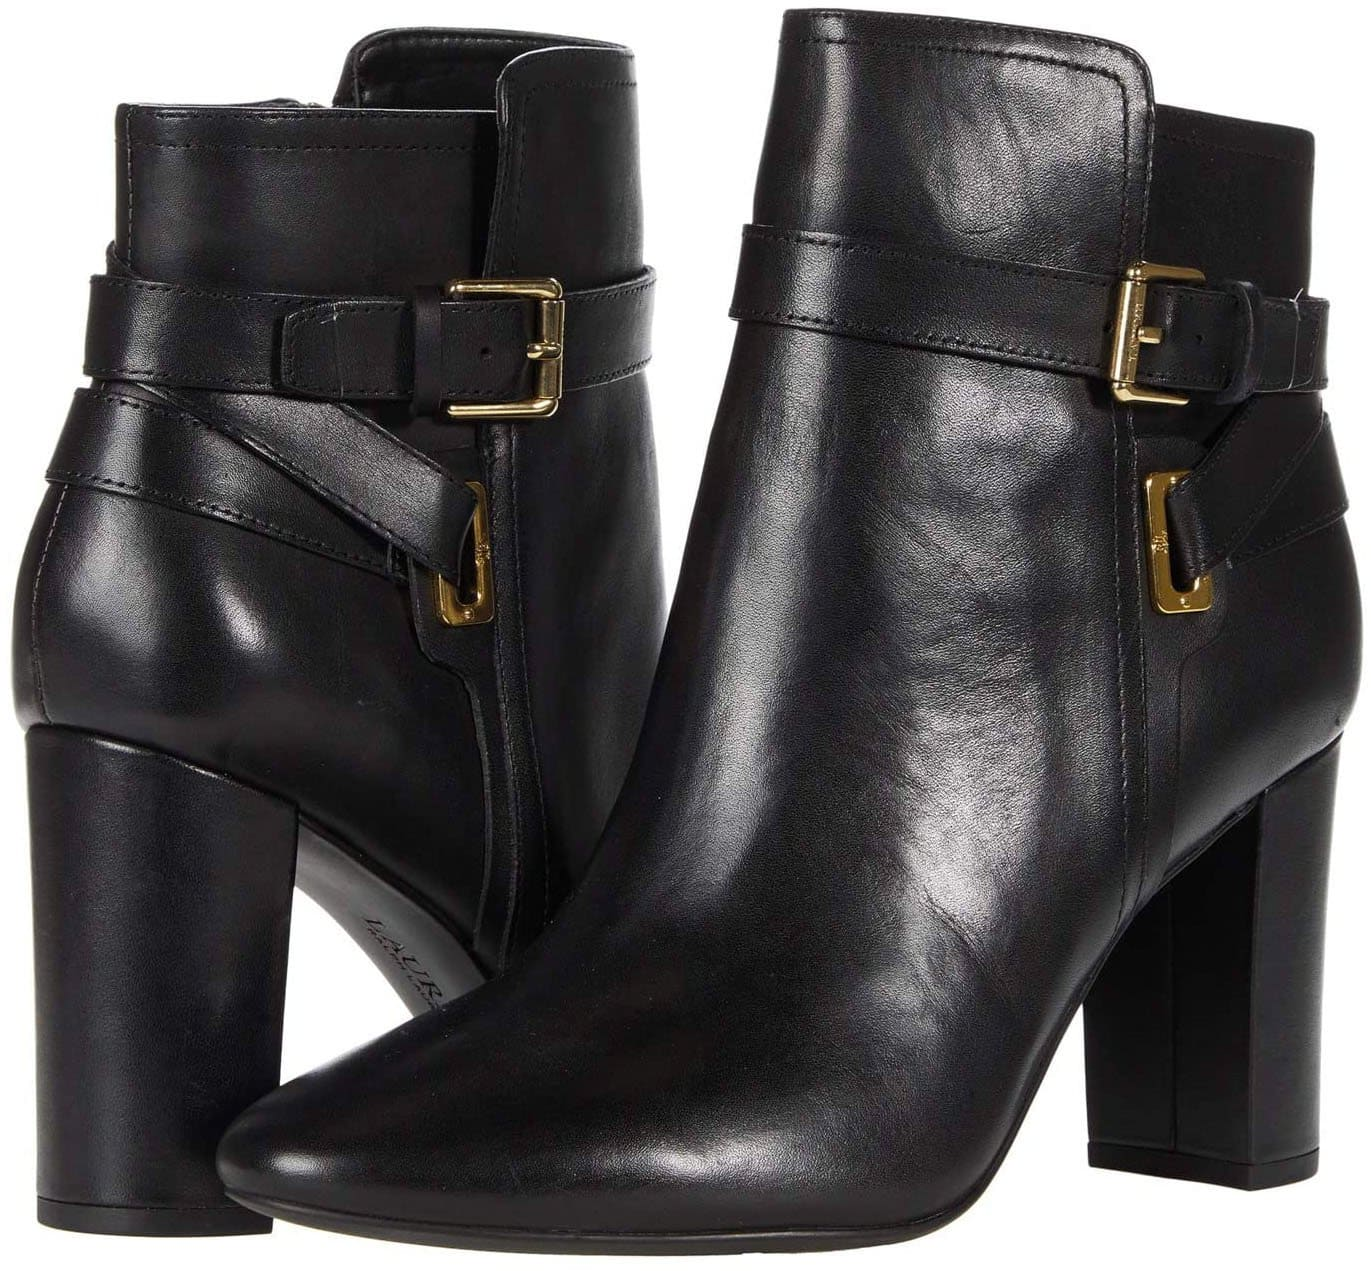 Sleek and chic, the Mackinley ankle boots feature a unique wrap-style buckled straps at the ankle